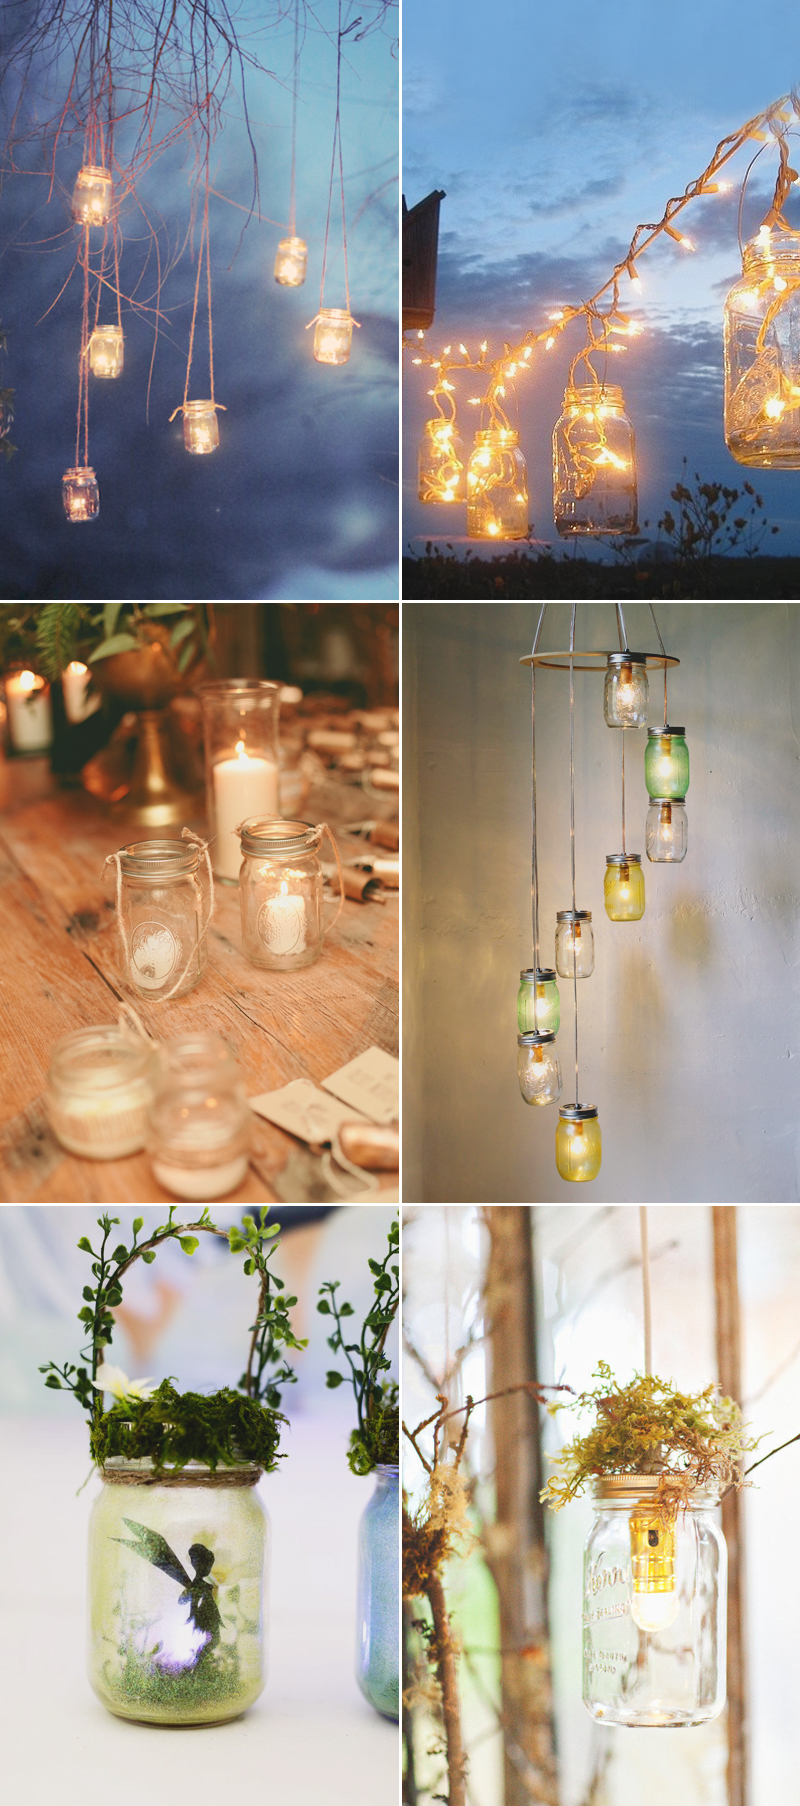 Masonjar02-lighting